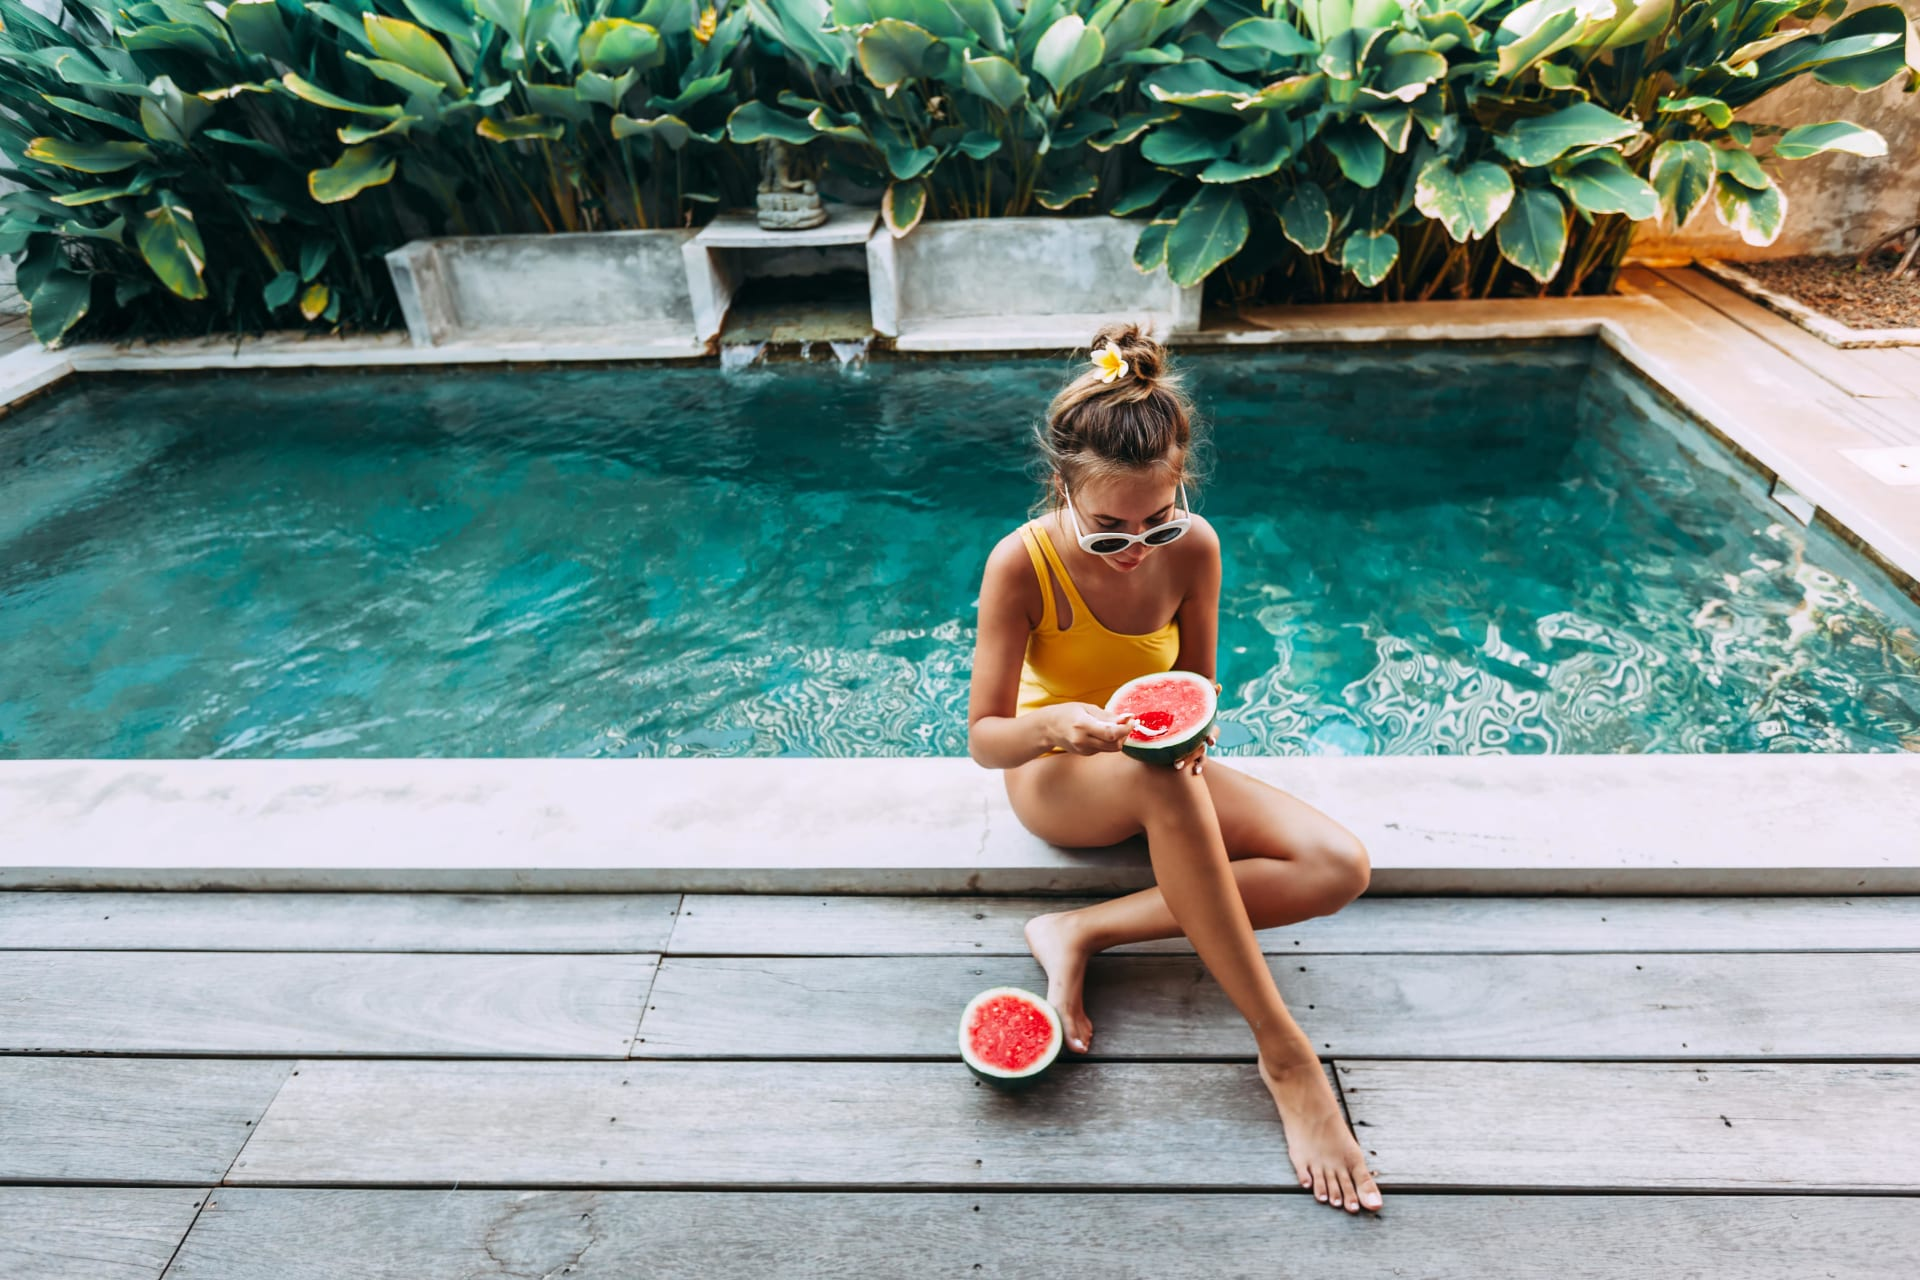 Girl eating a watermellon while sitting next to a pool